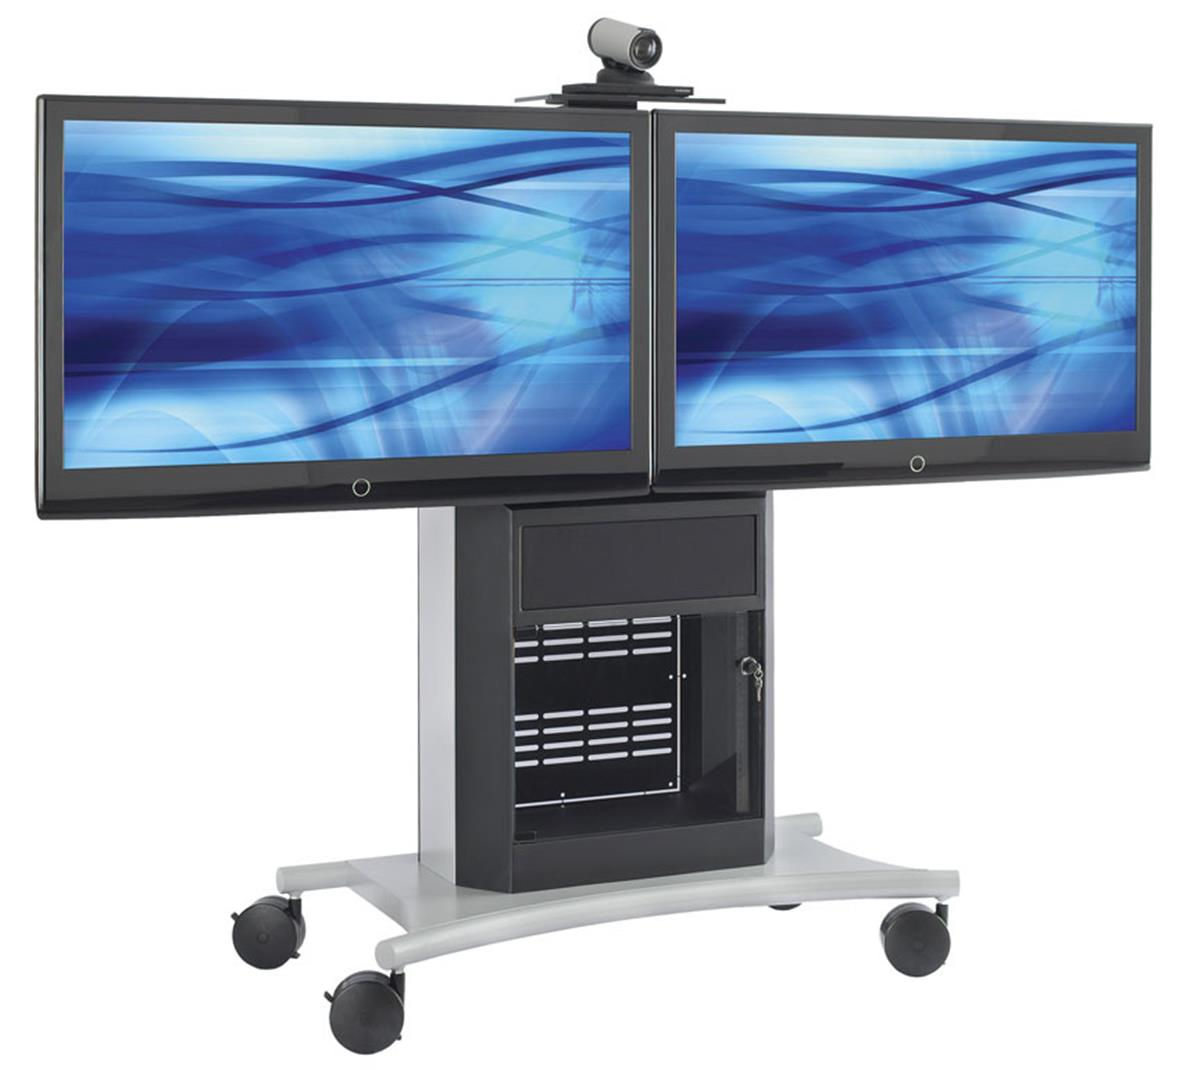 These Av Carts With Dual Display Capabilities Are Mobile